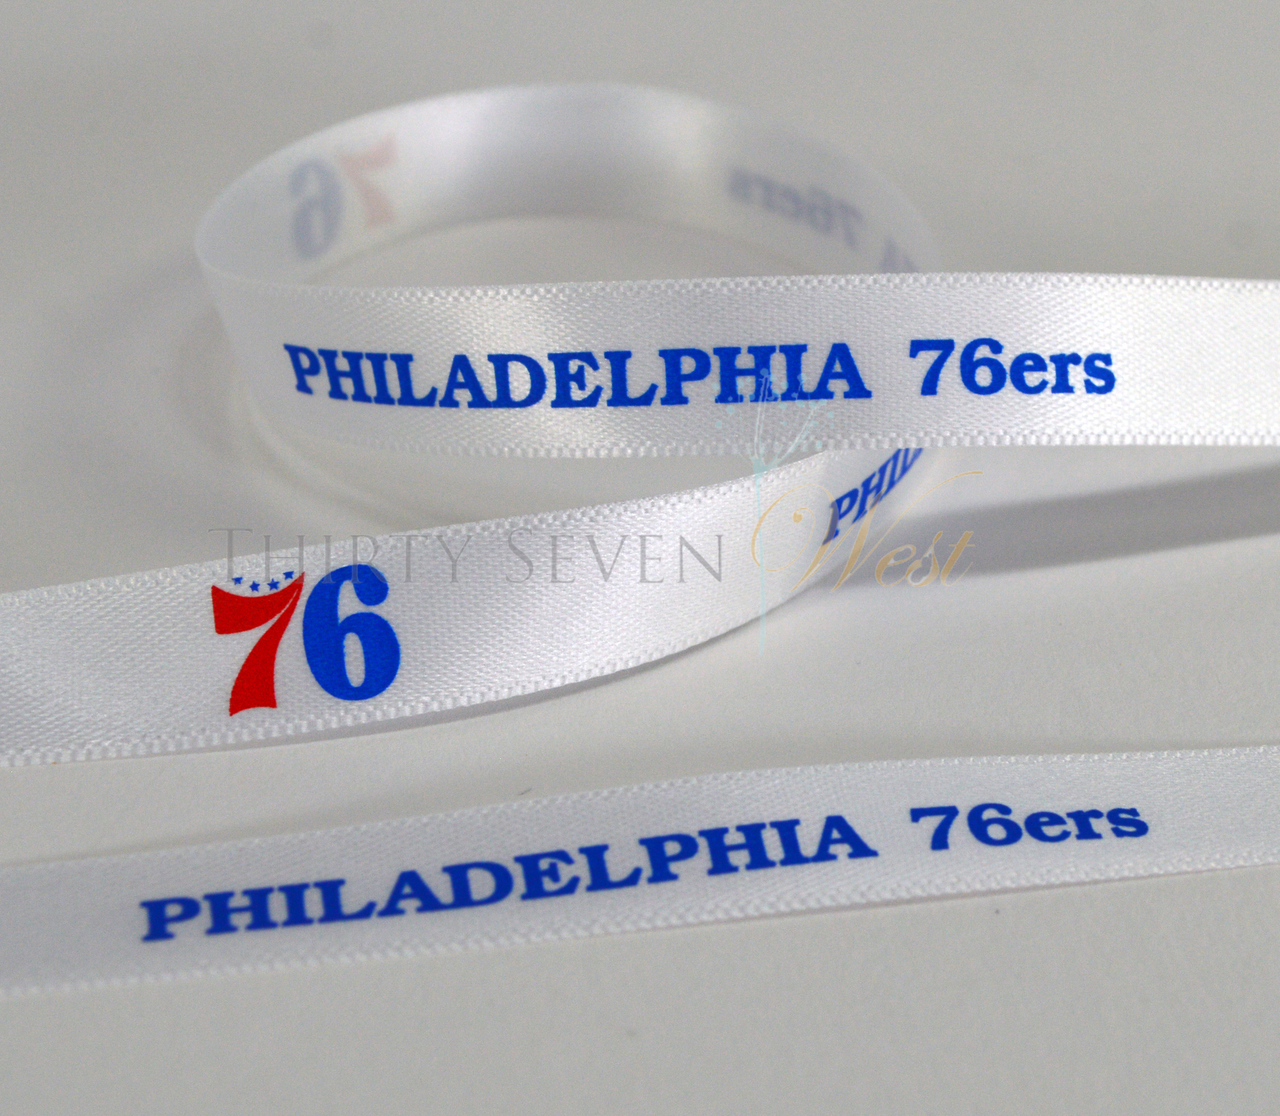 Custom Multi Color Logo Ribbon, Full Color Logo Ribbon, 2 Color Logo Ribbon, Two Color Logo Ribbon, Pantone Color Logo Ribbon, PMS Color Logo Ribbon, Multi Color Custom Ribbon, Philadelphia 76ers